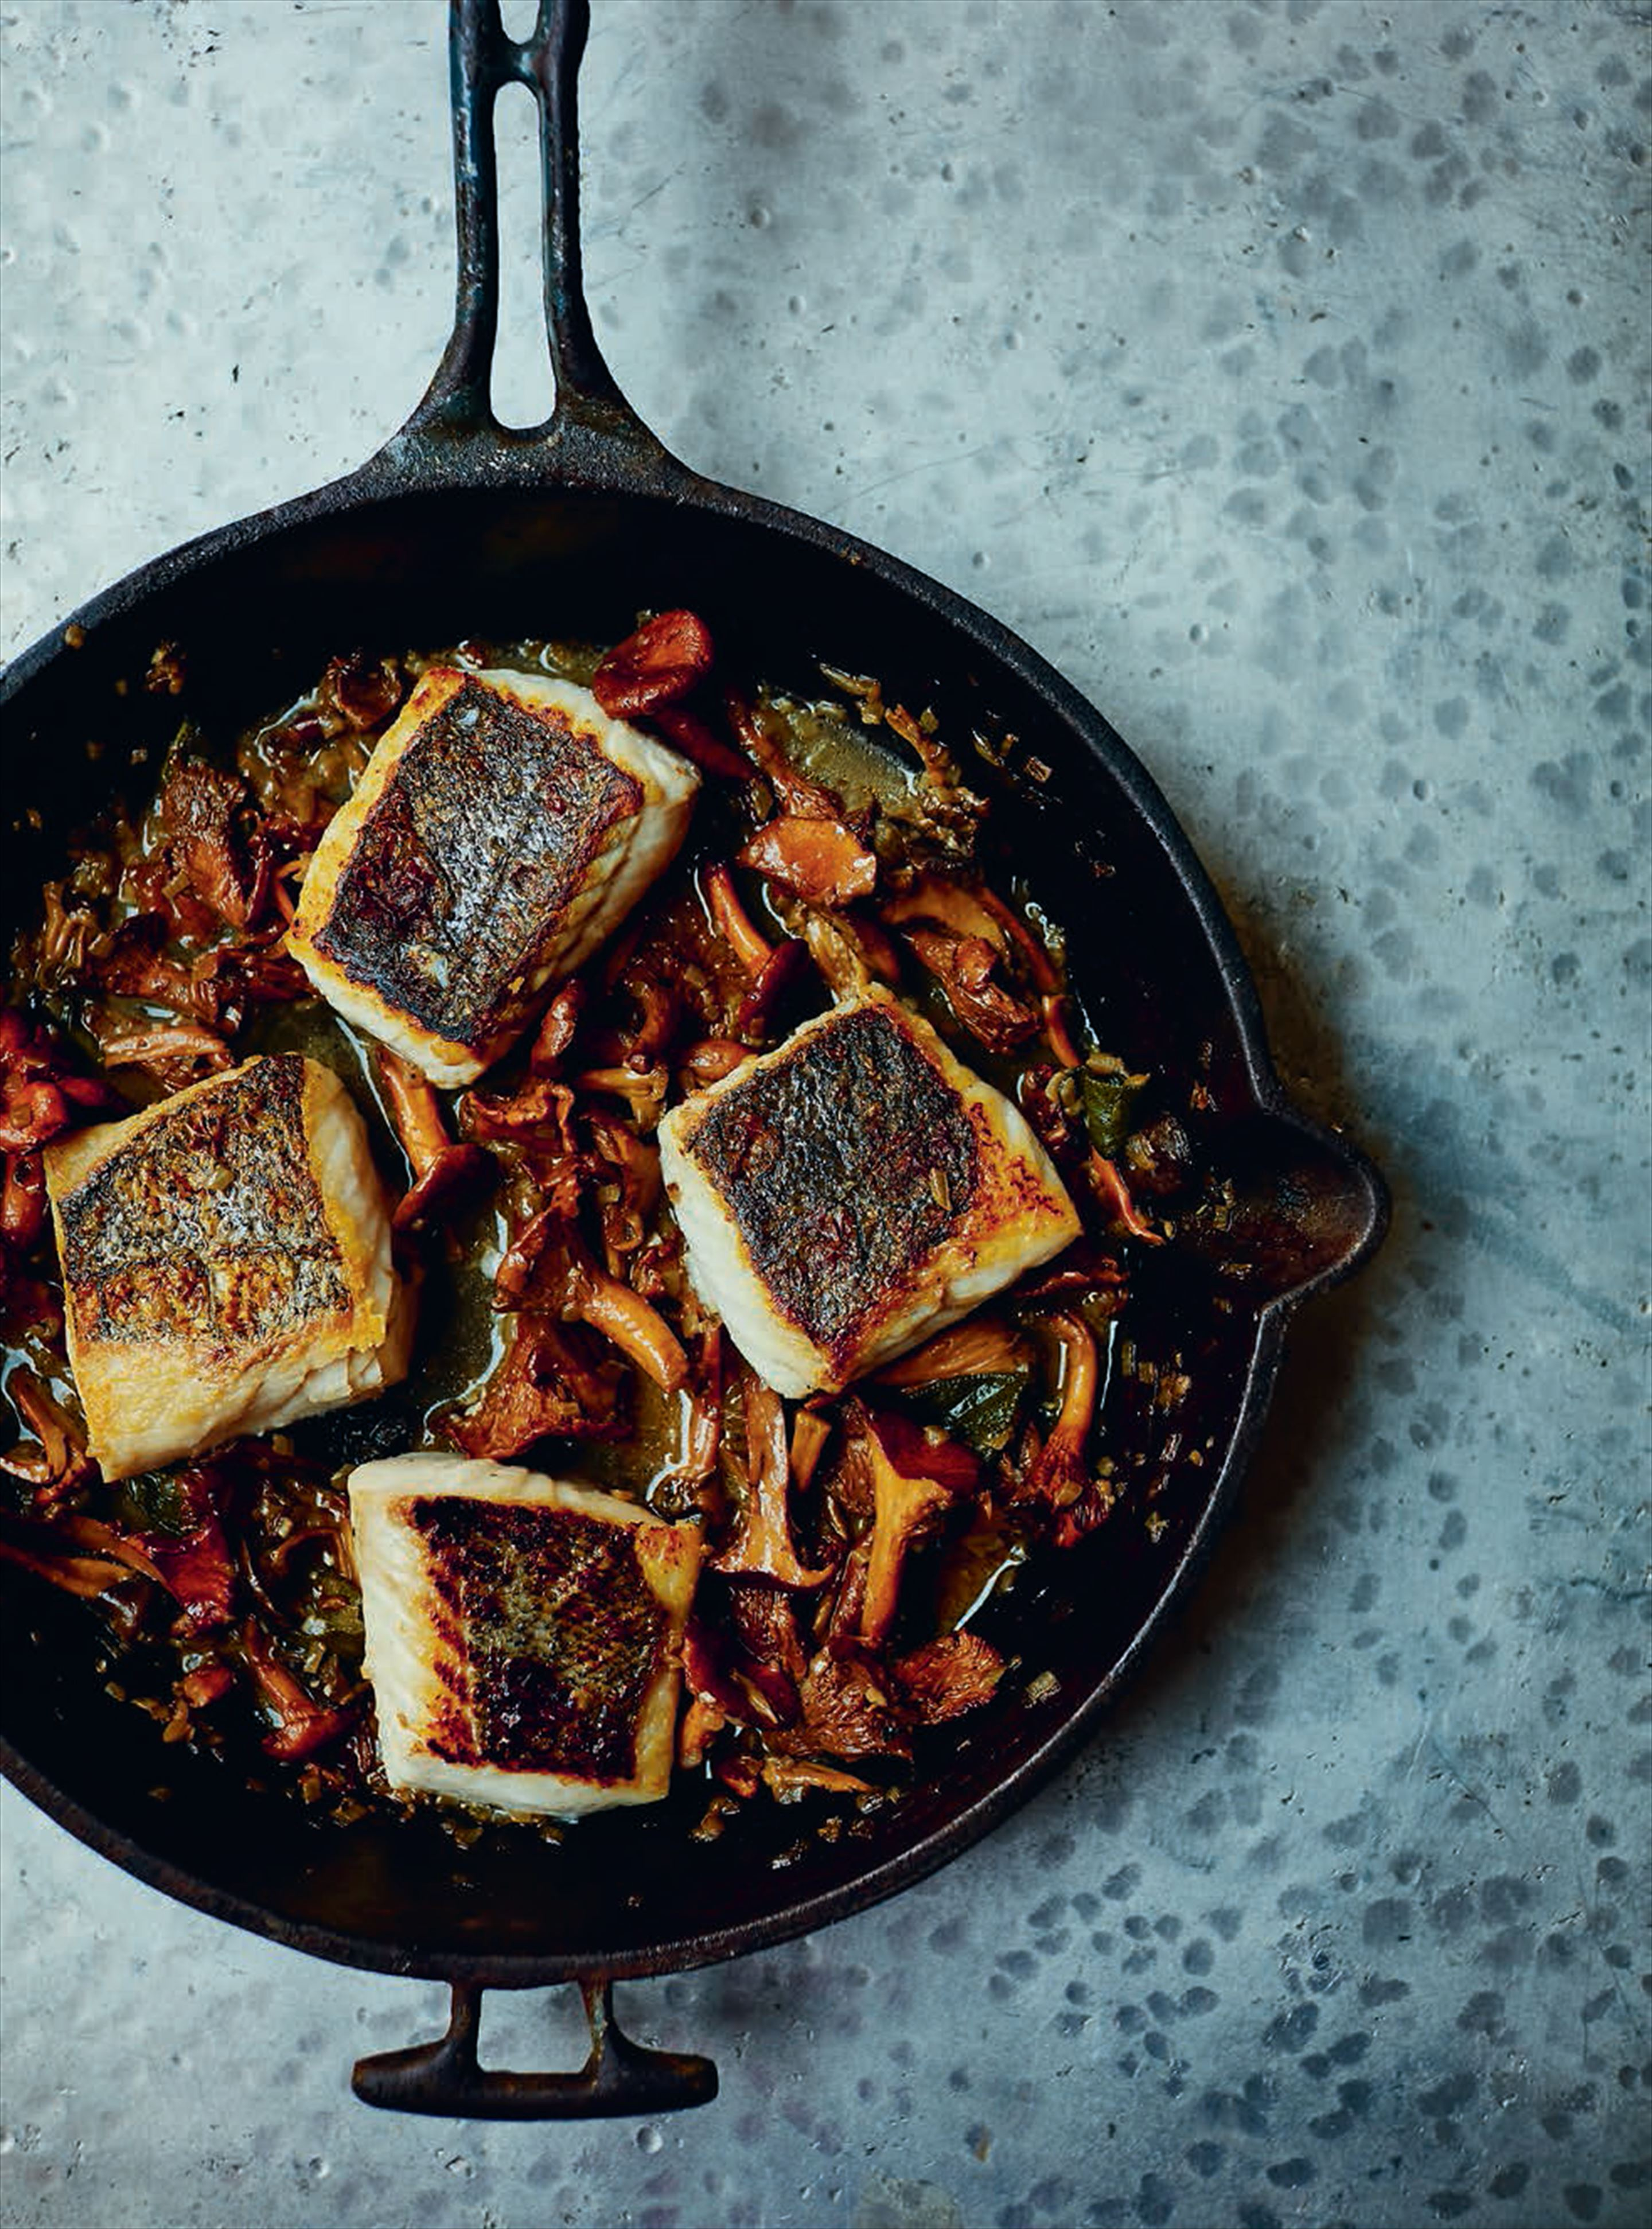 Pan-fried hake with sautéed wild chanterelles & sage